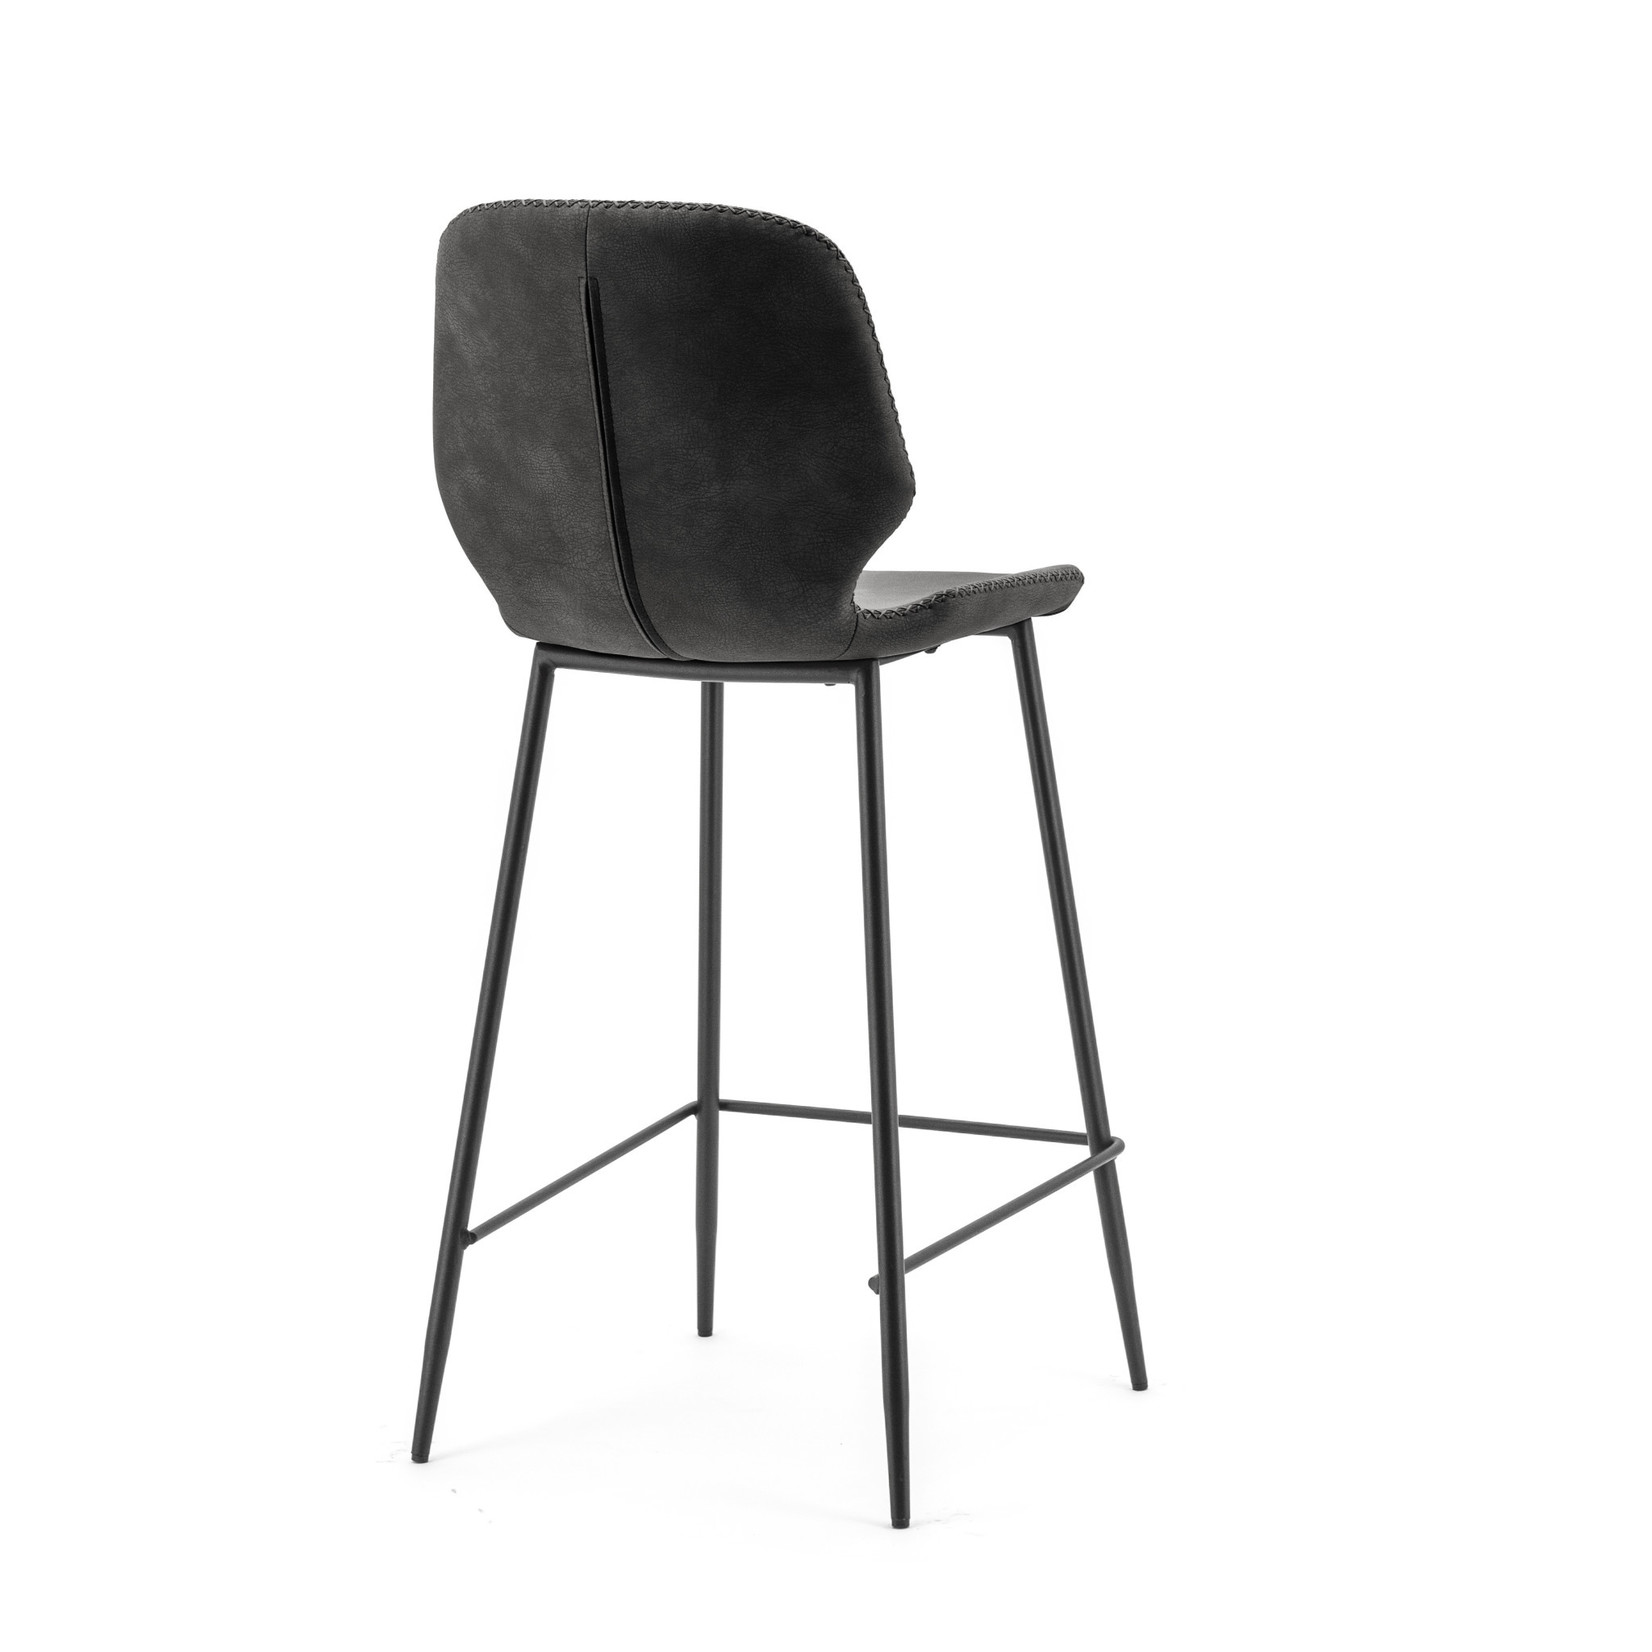 By Boo By Boo Barchair Seashell high - black